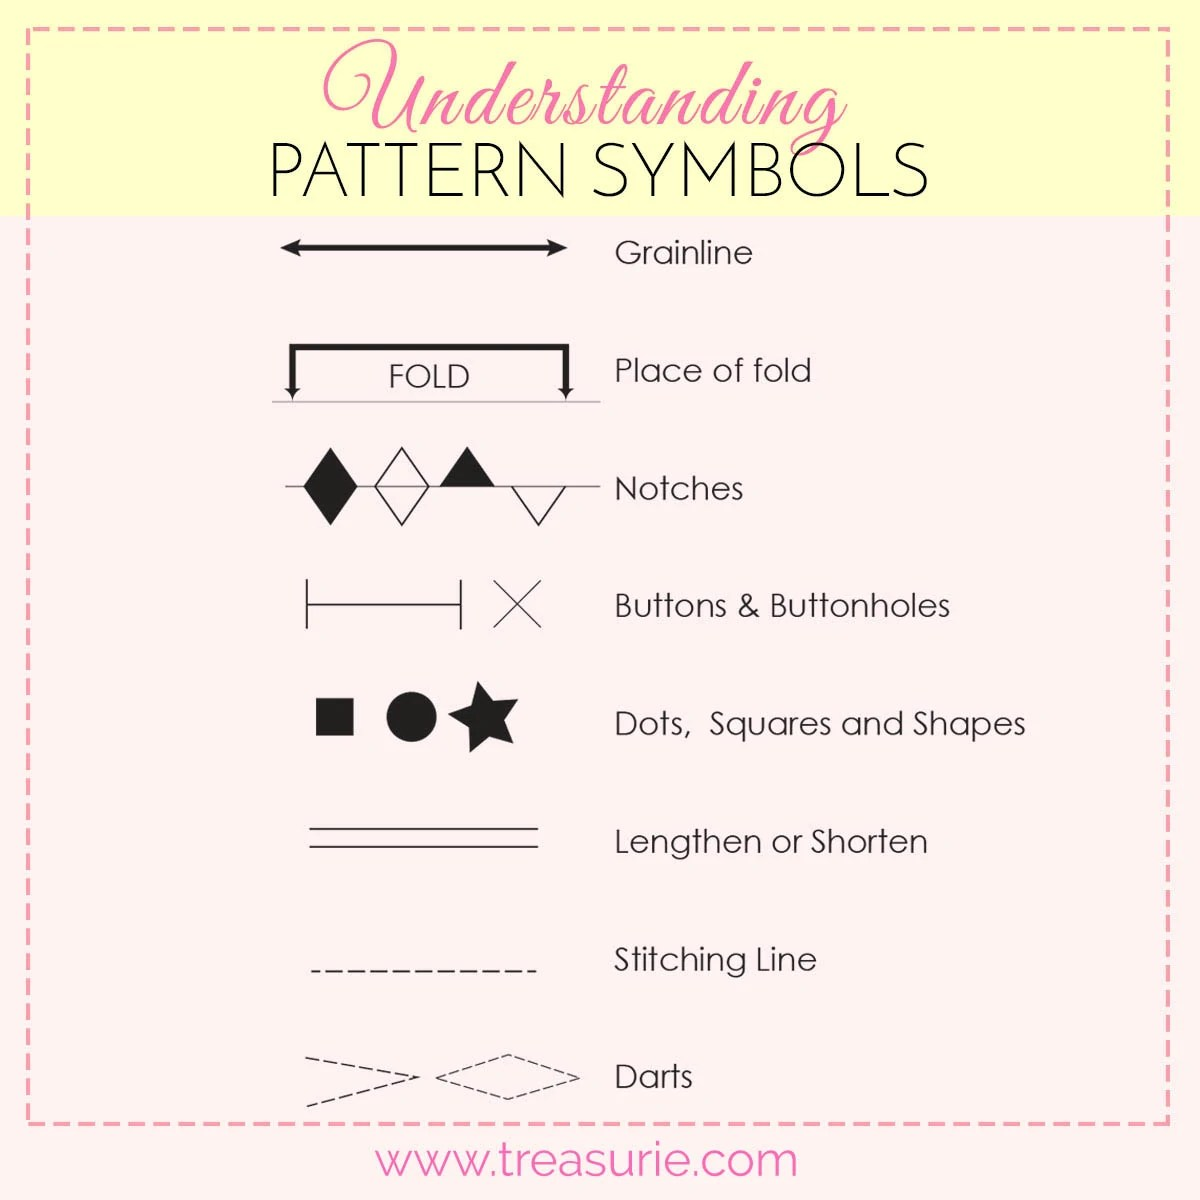 Sewing Pattern Symbols Guide